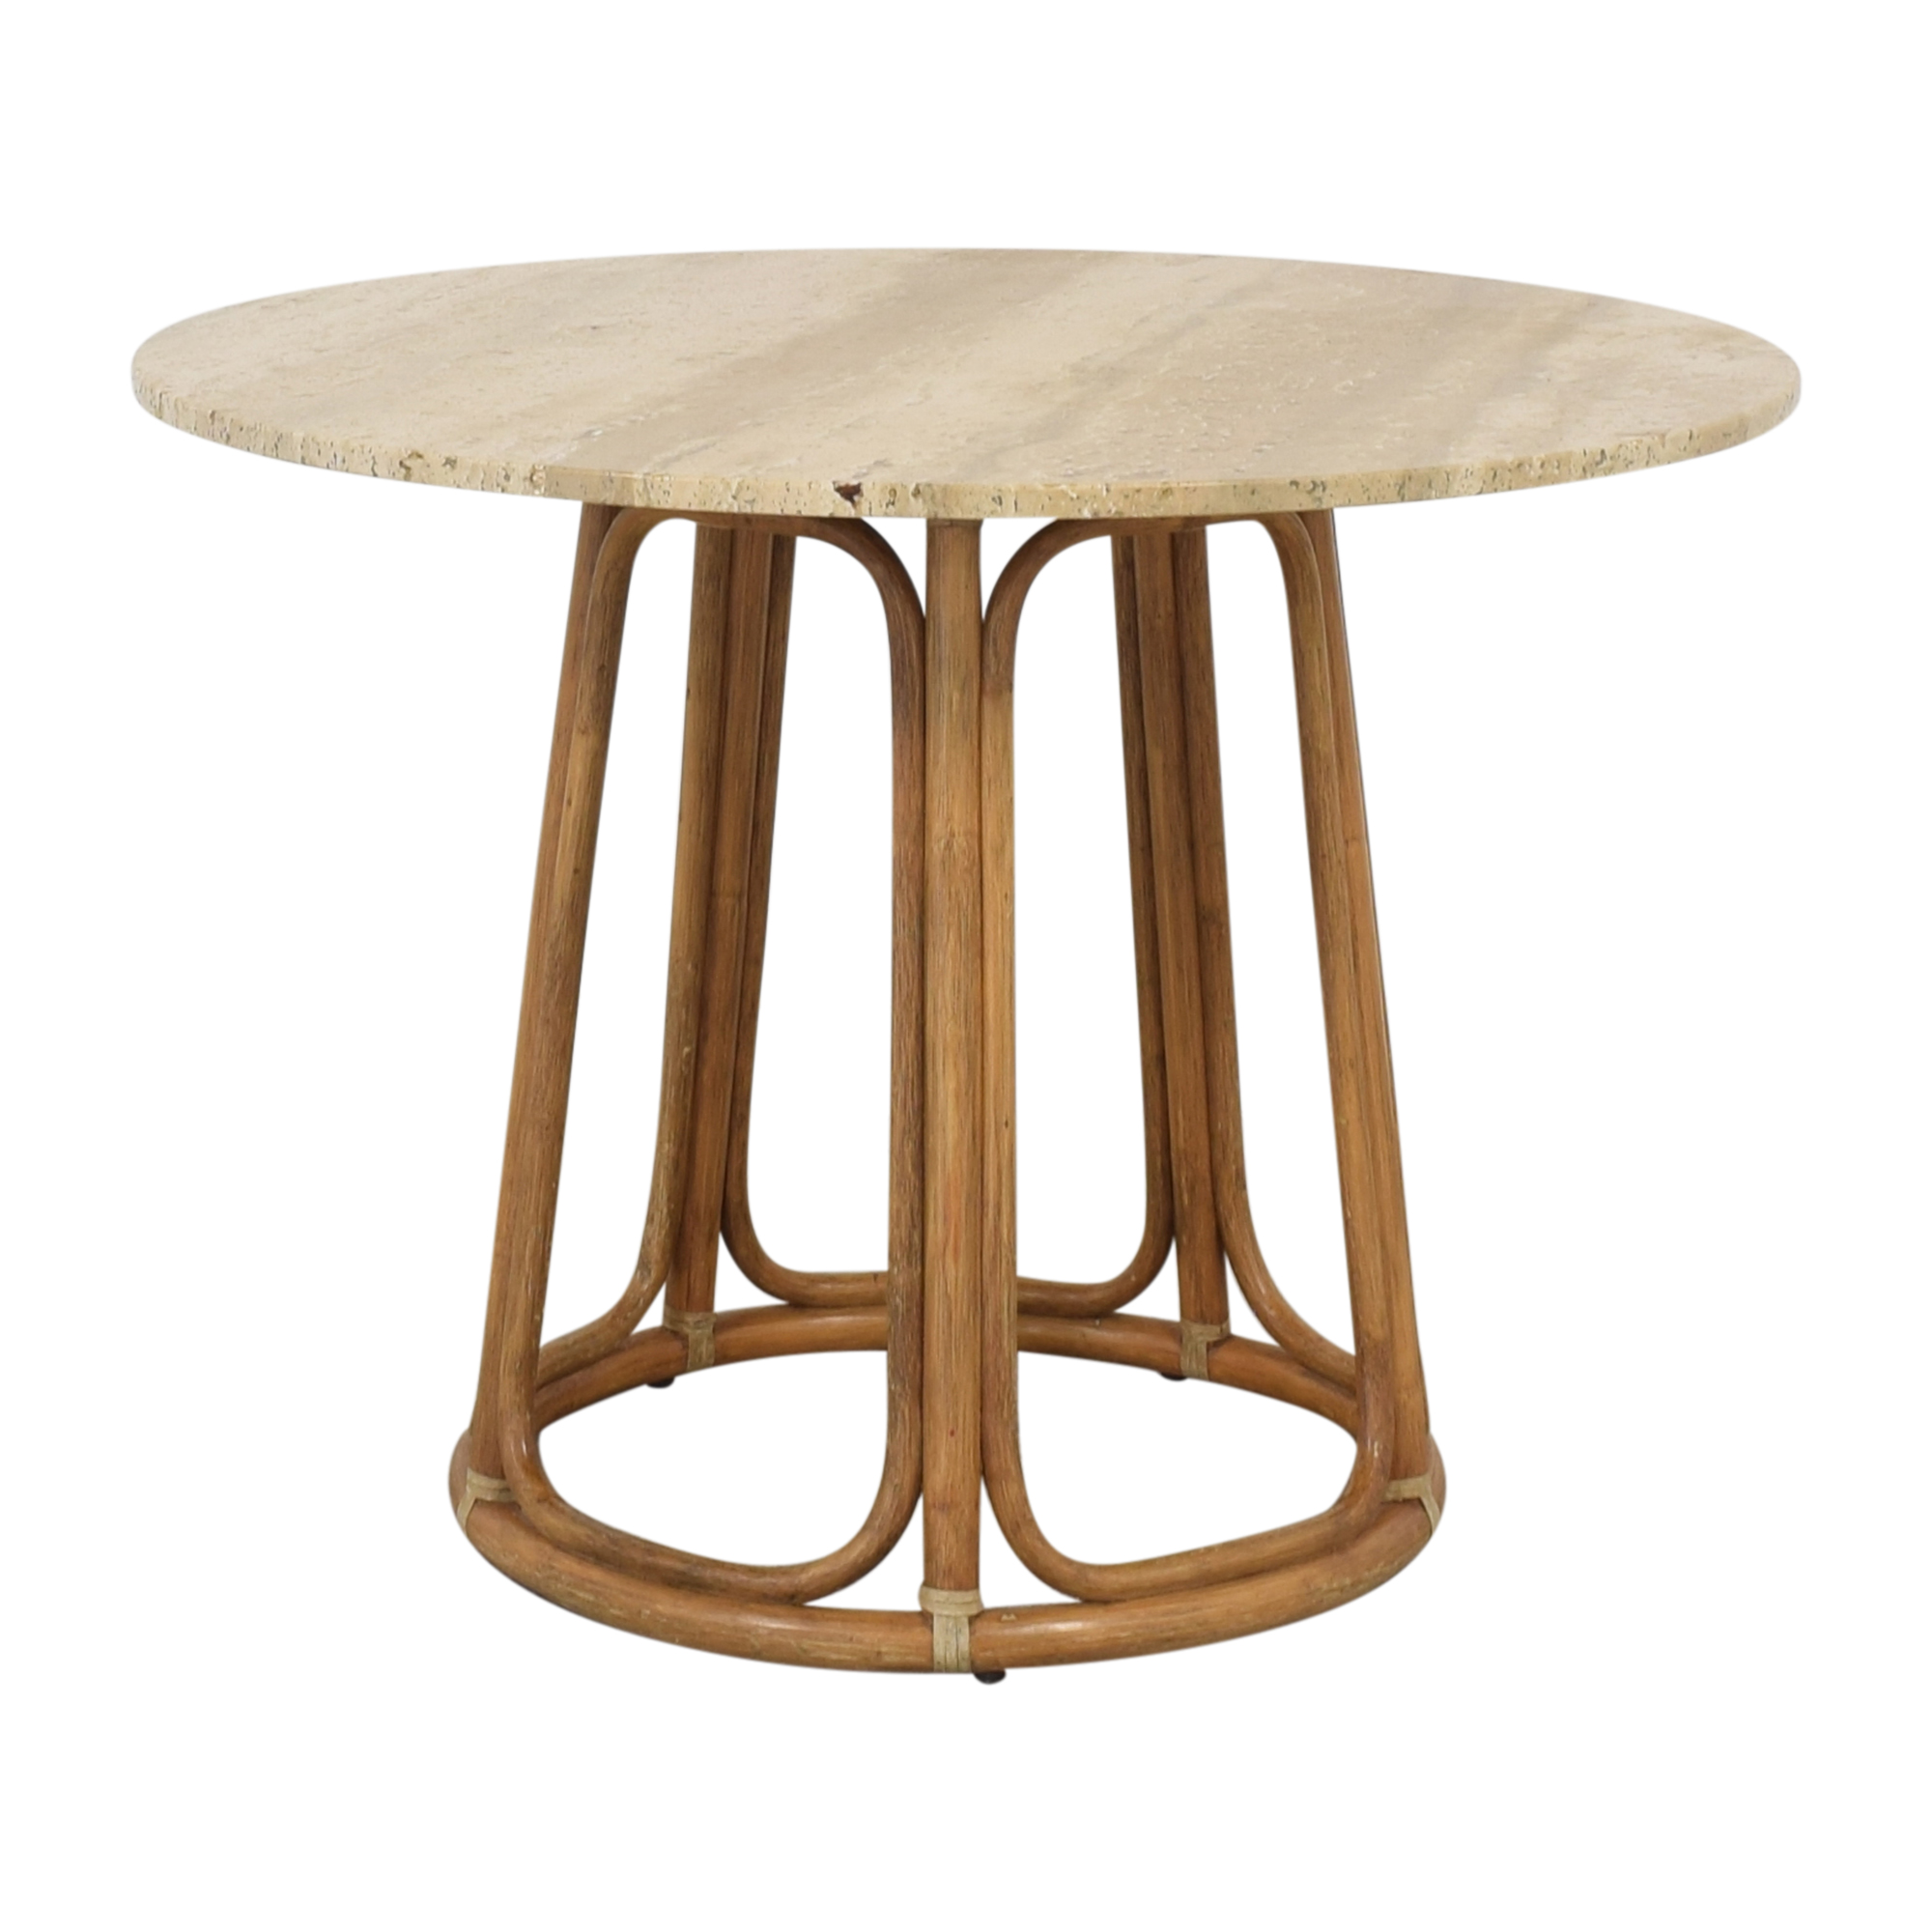 McGuire McGuire Dining Table price